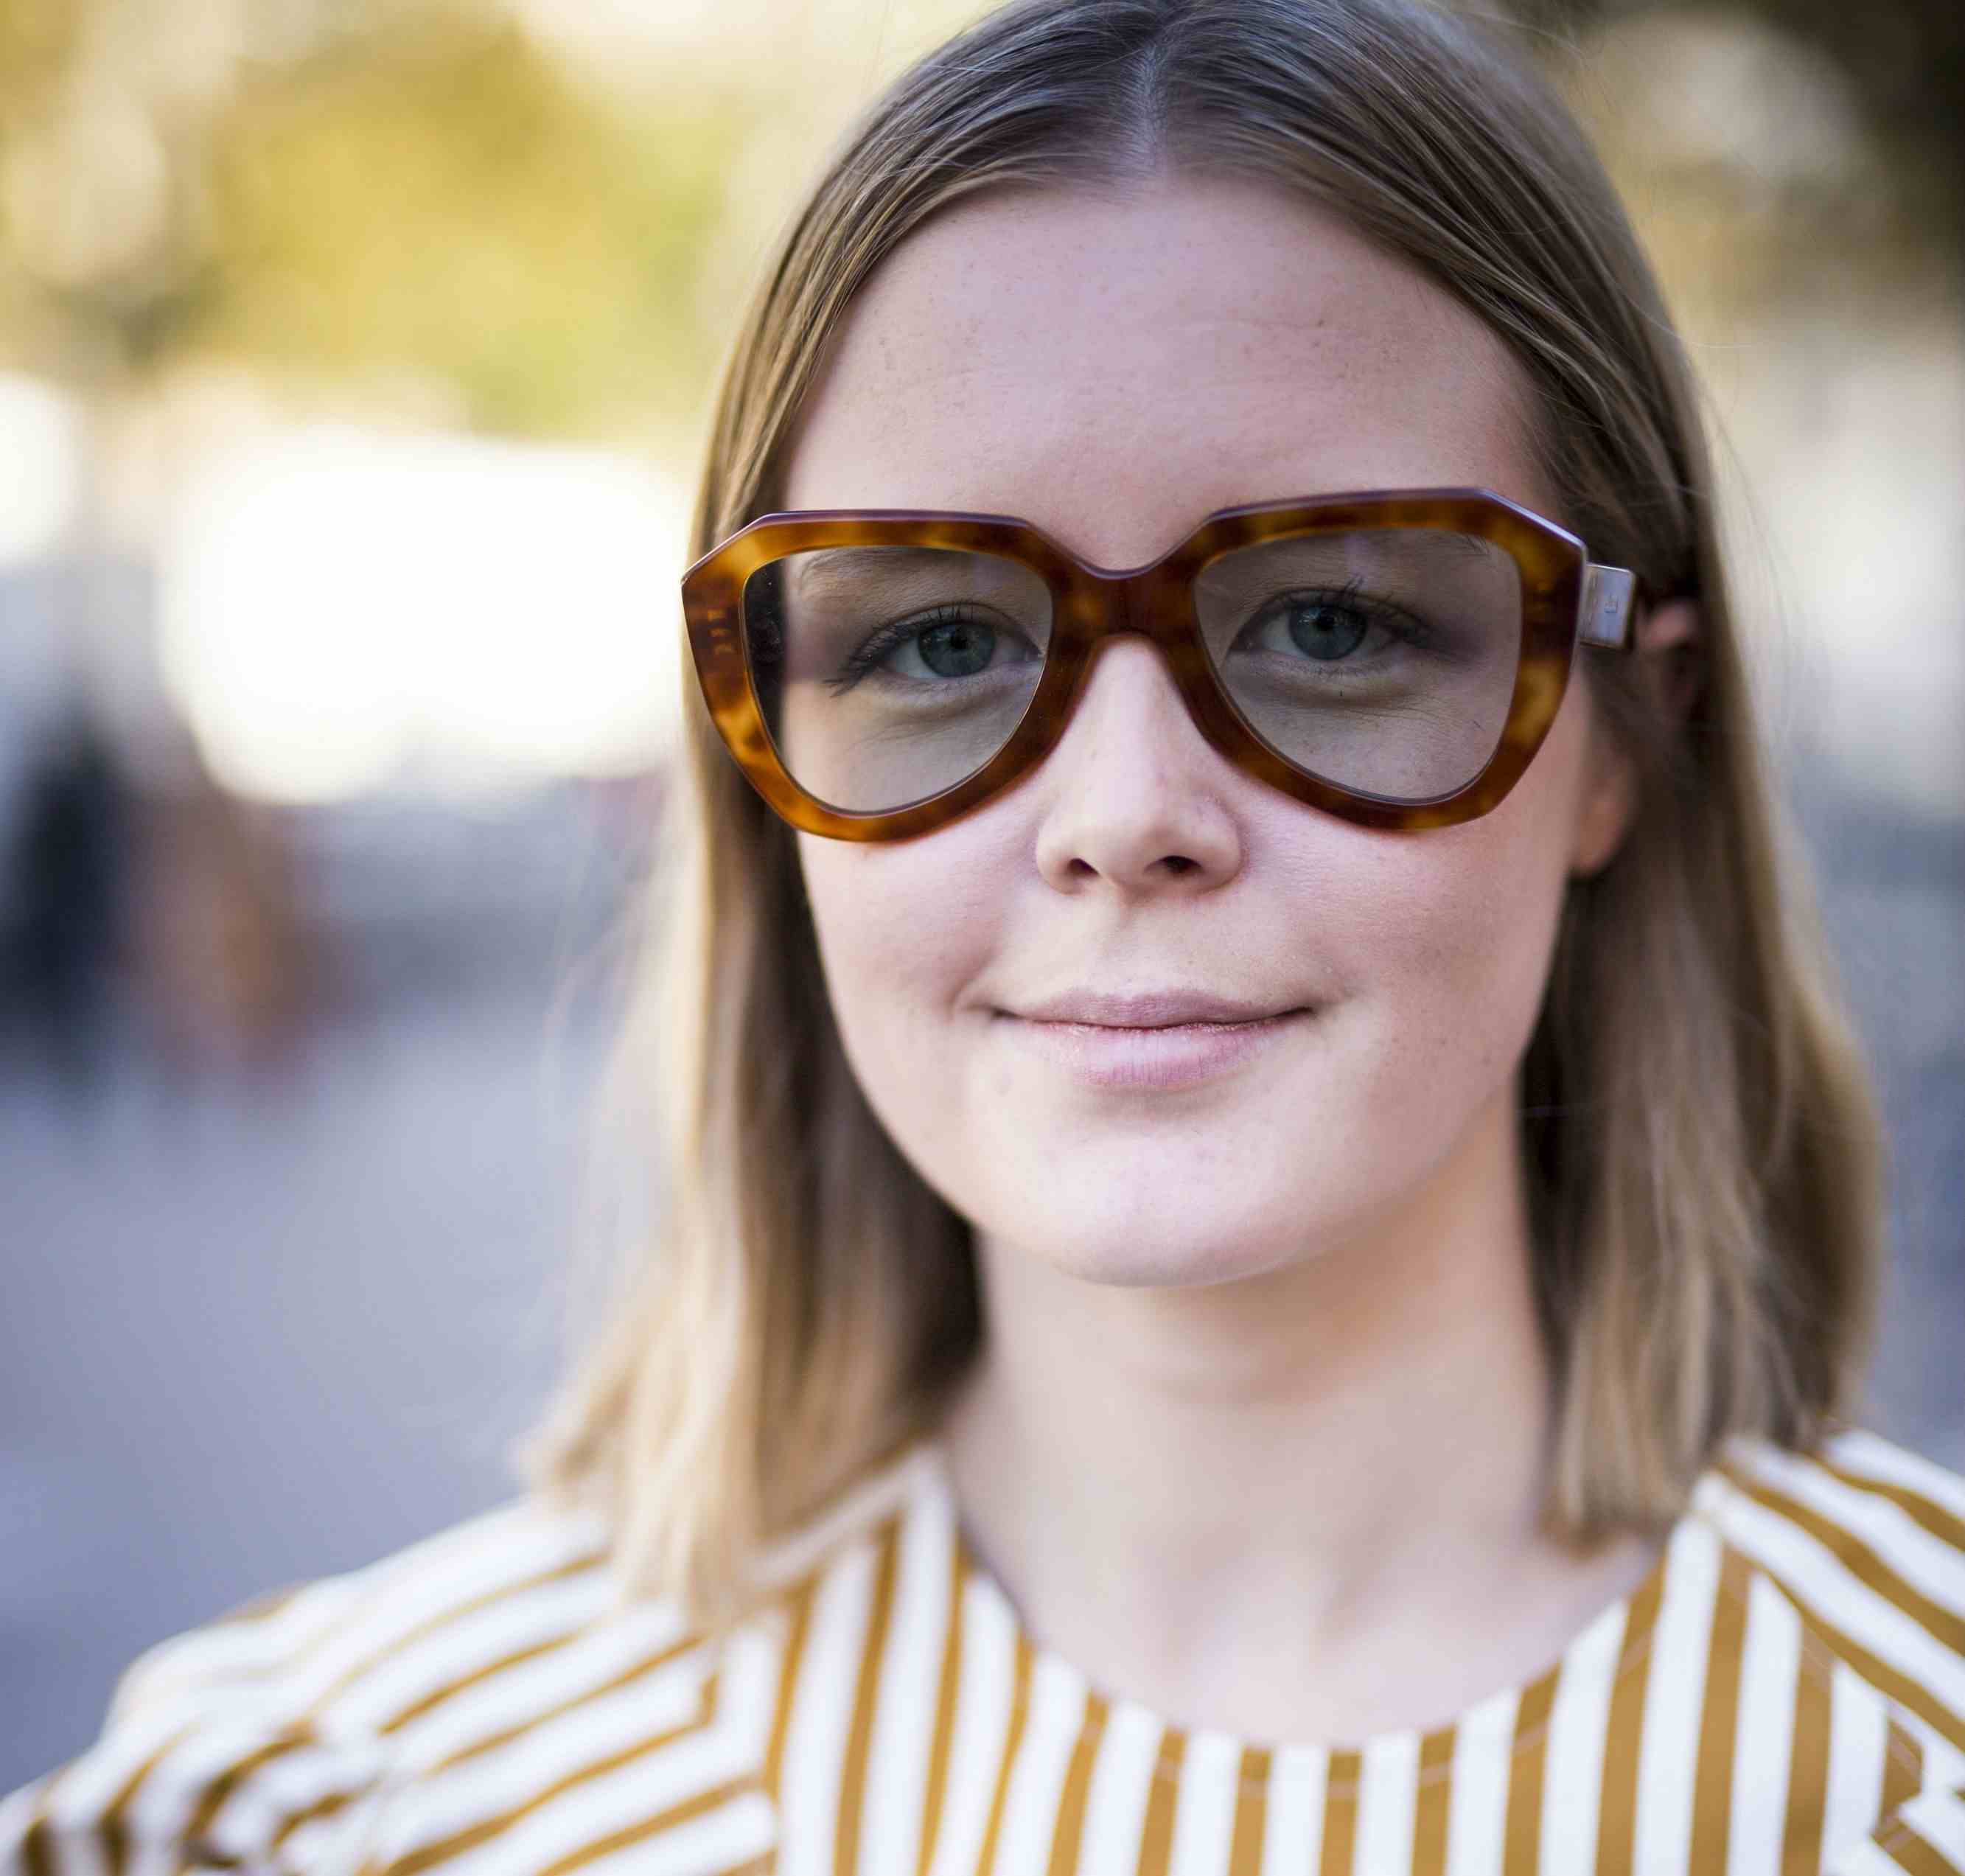 96cb8bc248681 The Trendy Sunglasses You ll Want to Buy in 2019